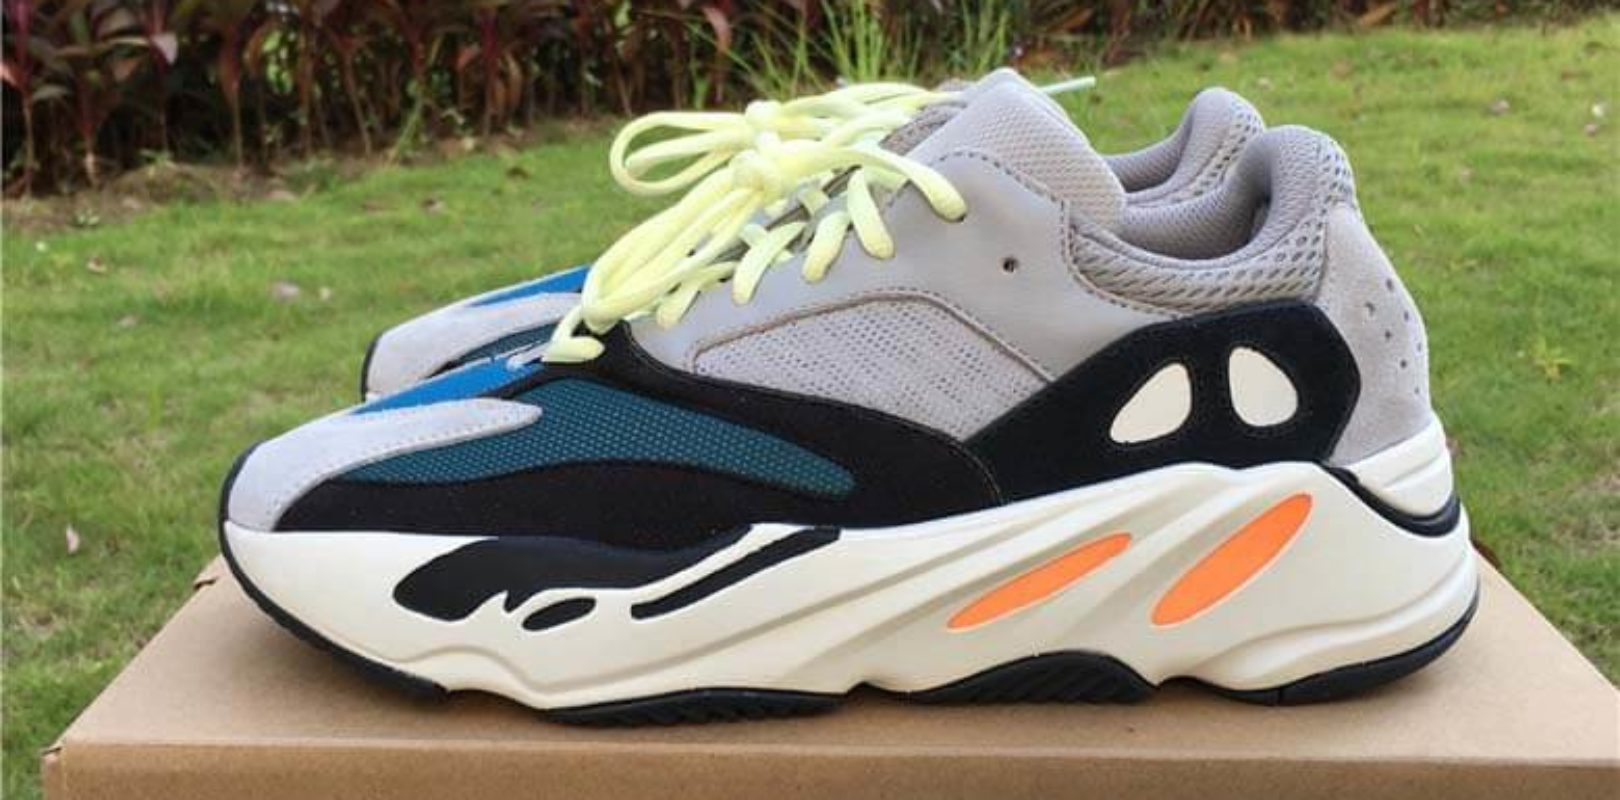 check out 4b837 15fba Adidas Yeezy Boost 700 (Wave Runner) Review: Can you wear ...